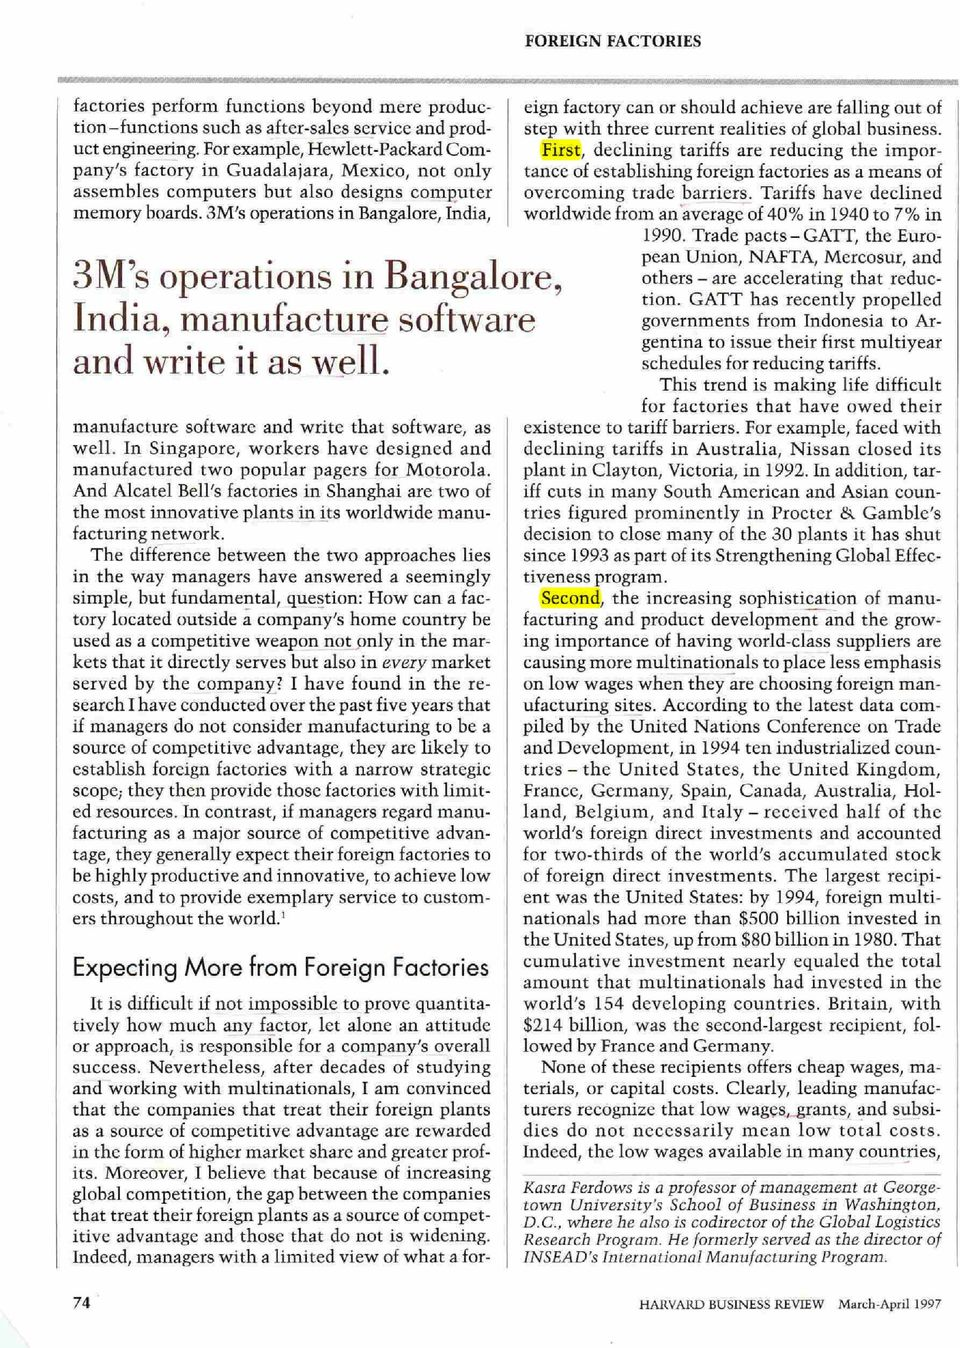 3M's operations in Bangalore, India, 3M's operations in Bangalore, India, manufacture software and write it as w~ll.